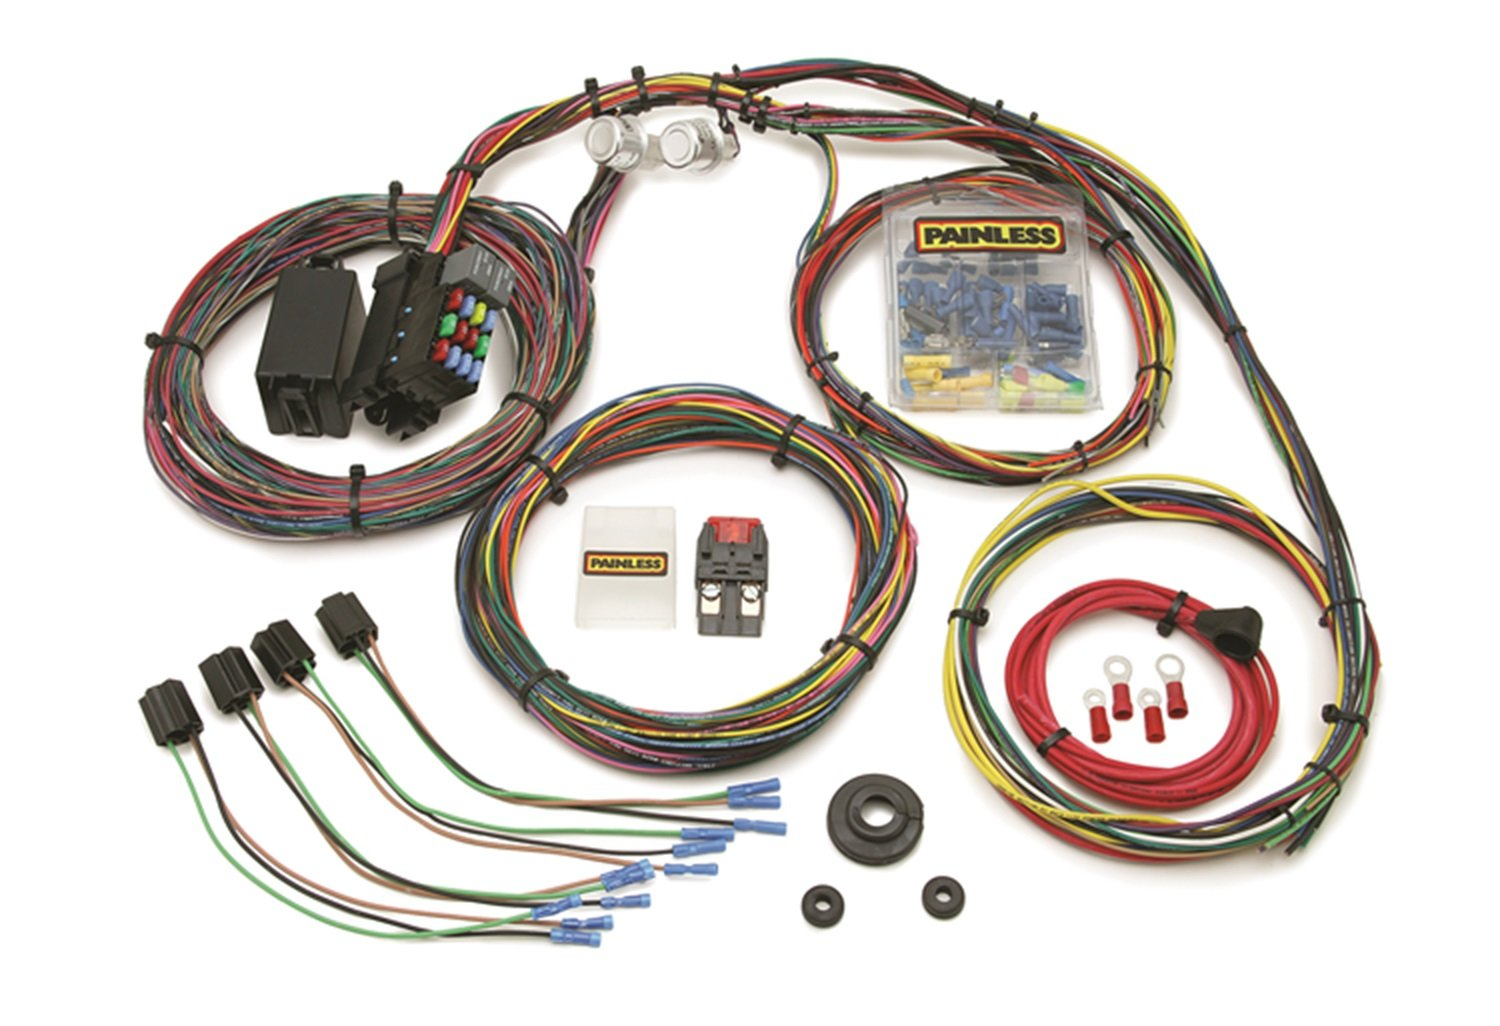 71gWOH5D5zL._SL1500_ amazon com painless 10127 automotive painless wiring harness rebate at n-0.co